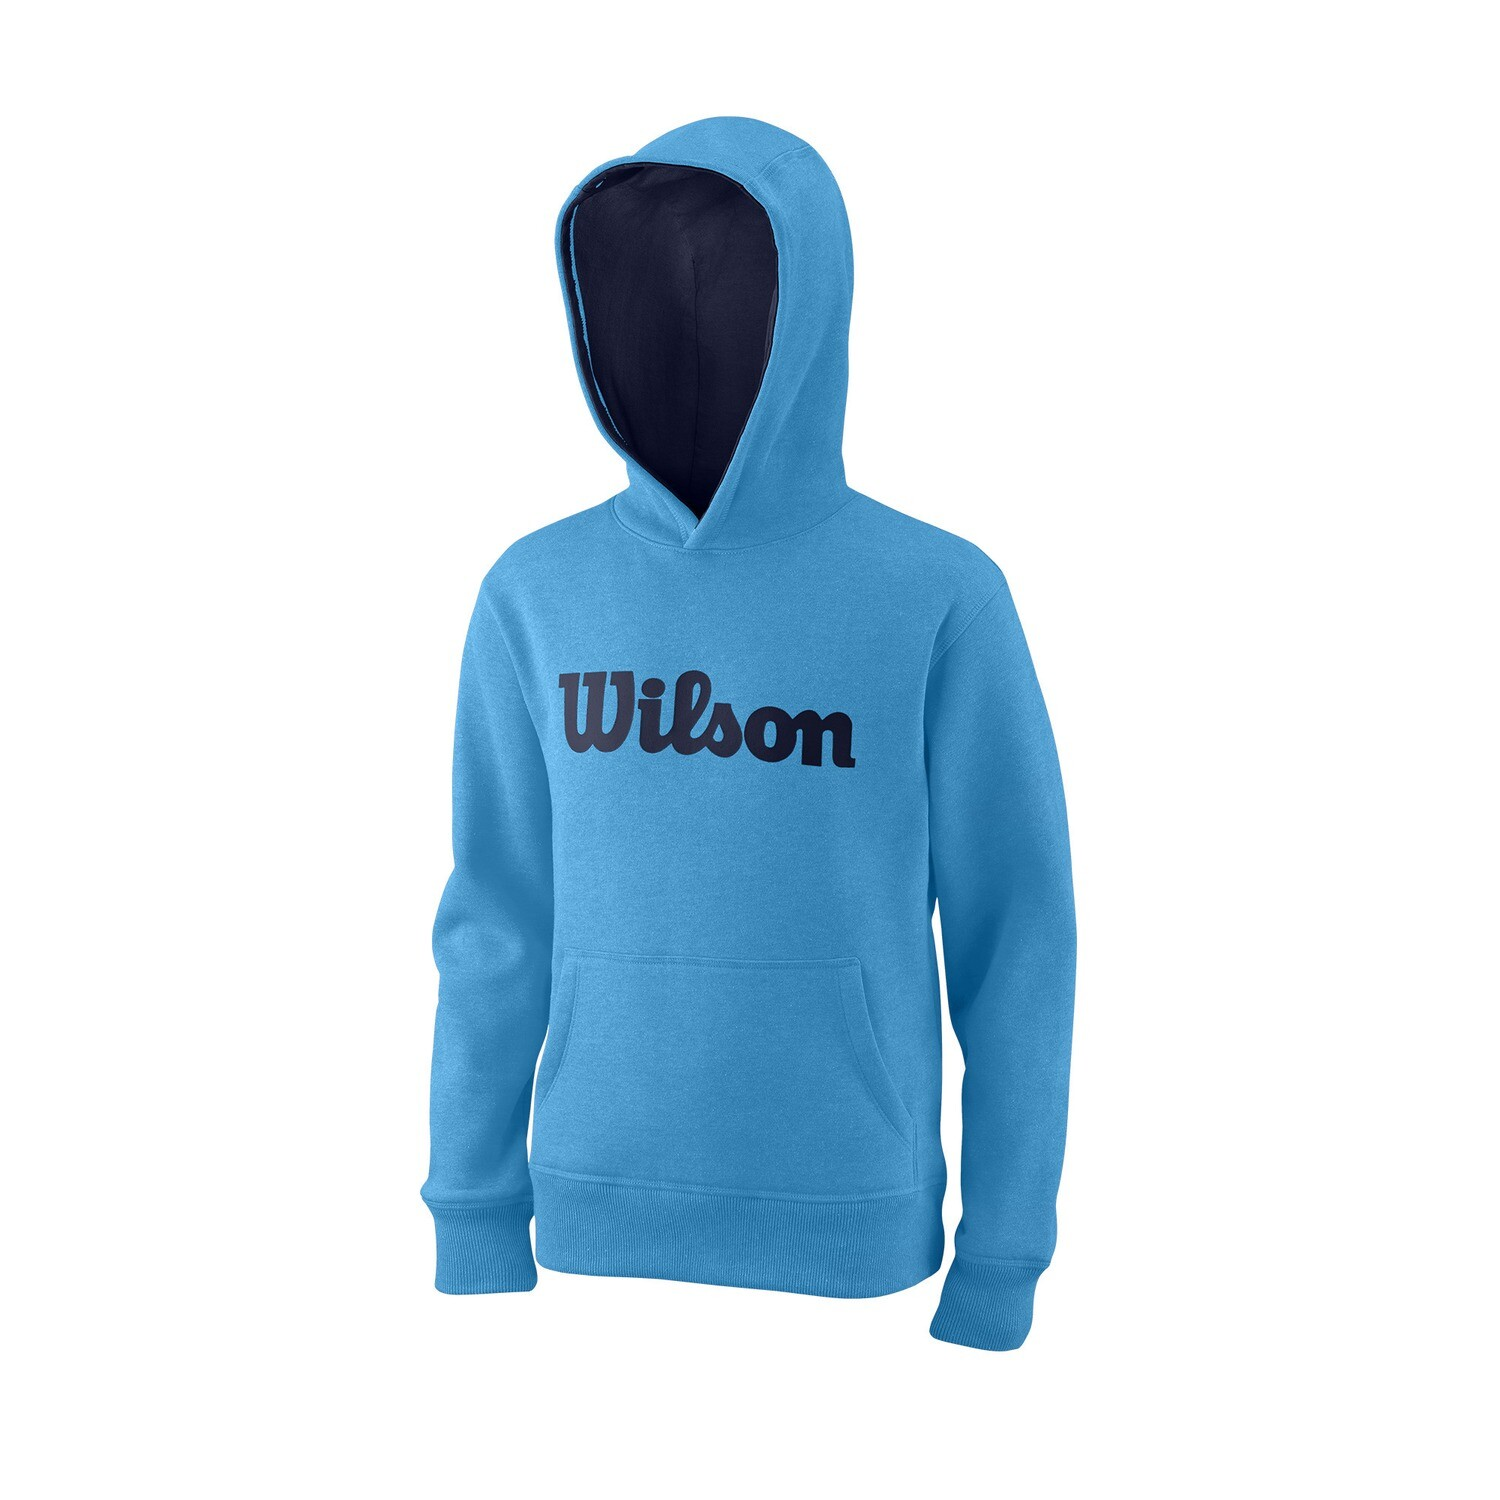 WIlson Youth Script Cotton Hoodie - Coastal Blue